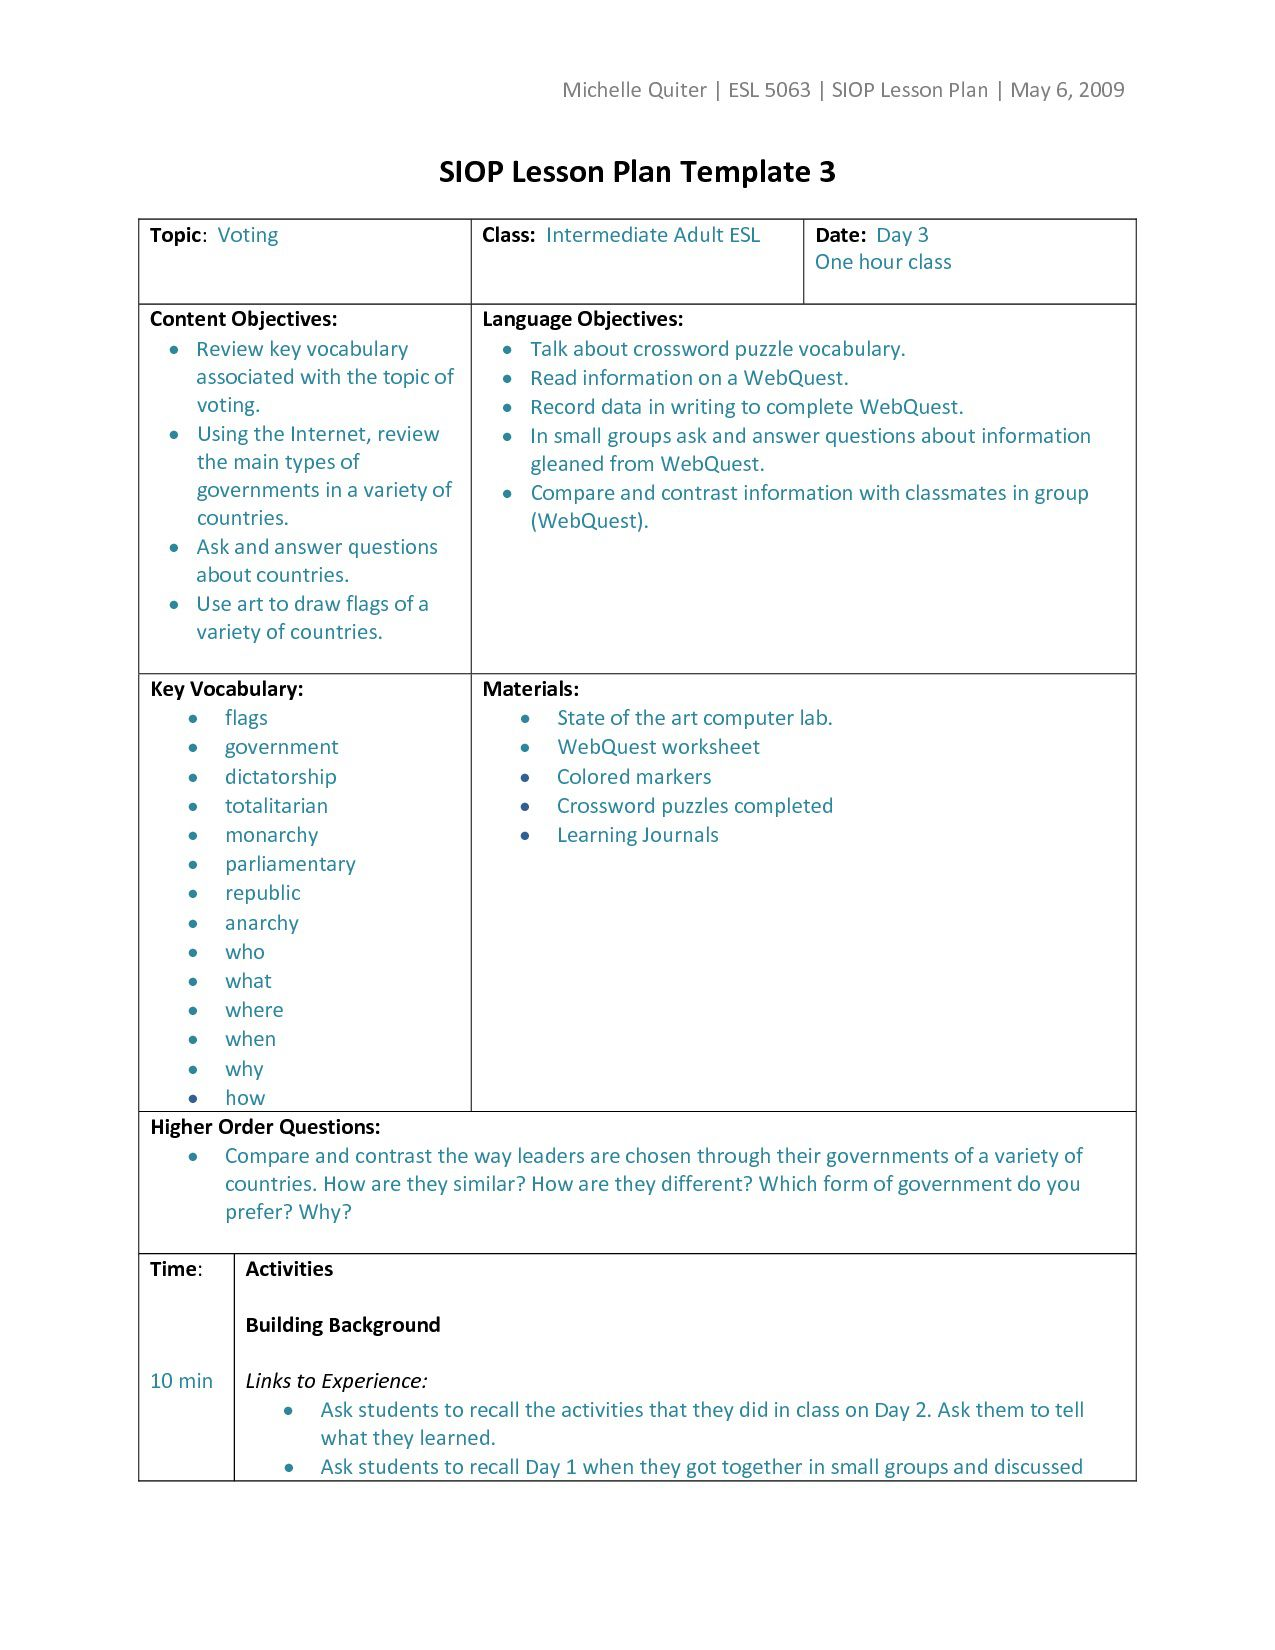 006 Wondrou Siop Lesson Plan Template 1 Design  Example First Grade Word Document 1stFull